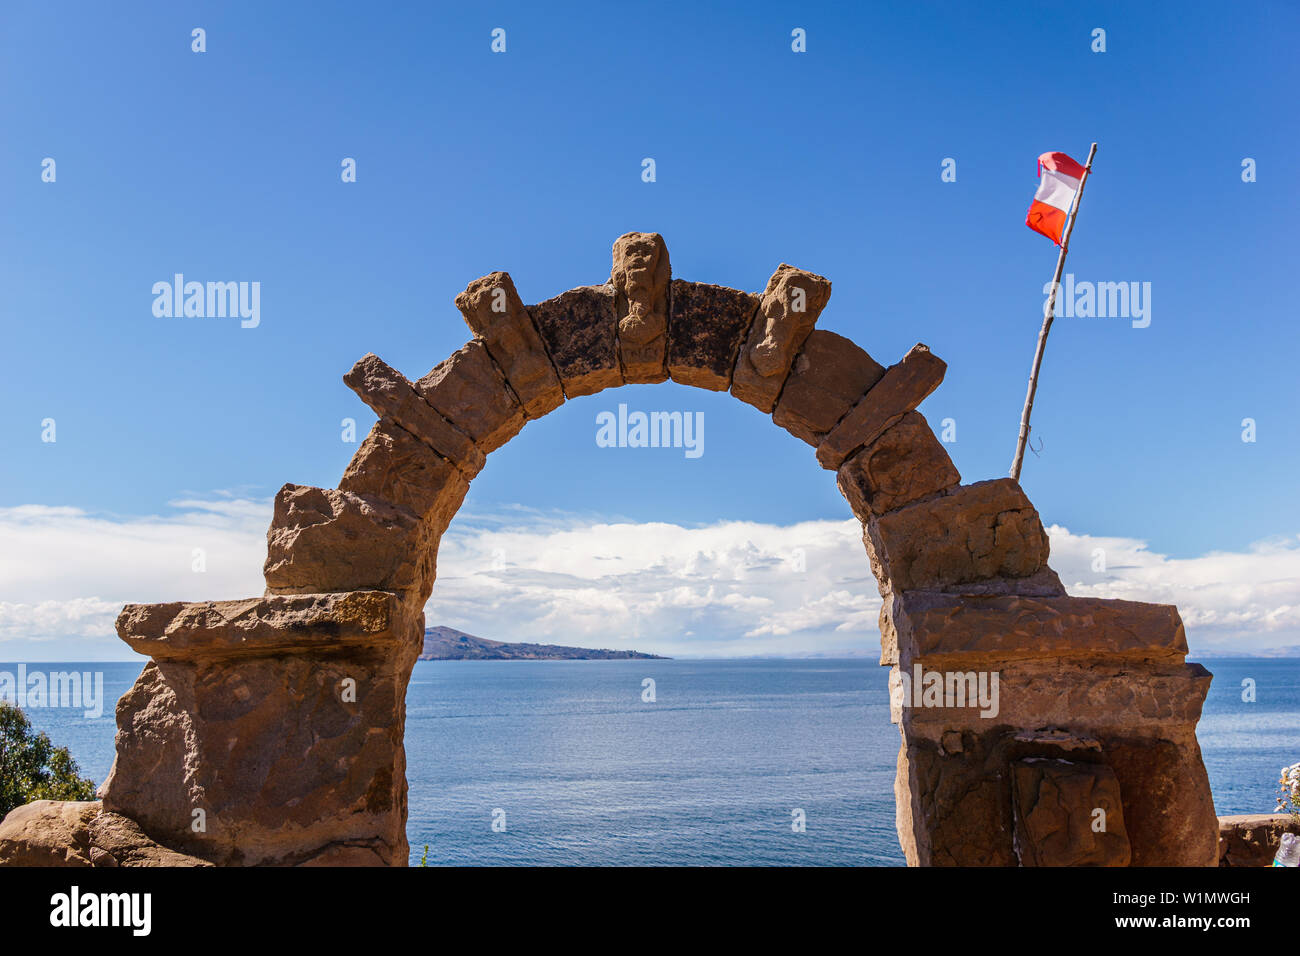 Ruins in lake Titikaka in a clear day in Peru - Stock Image